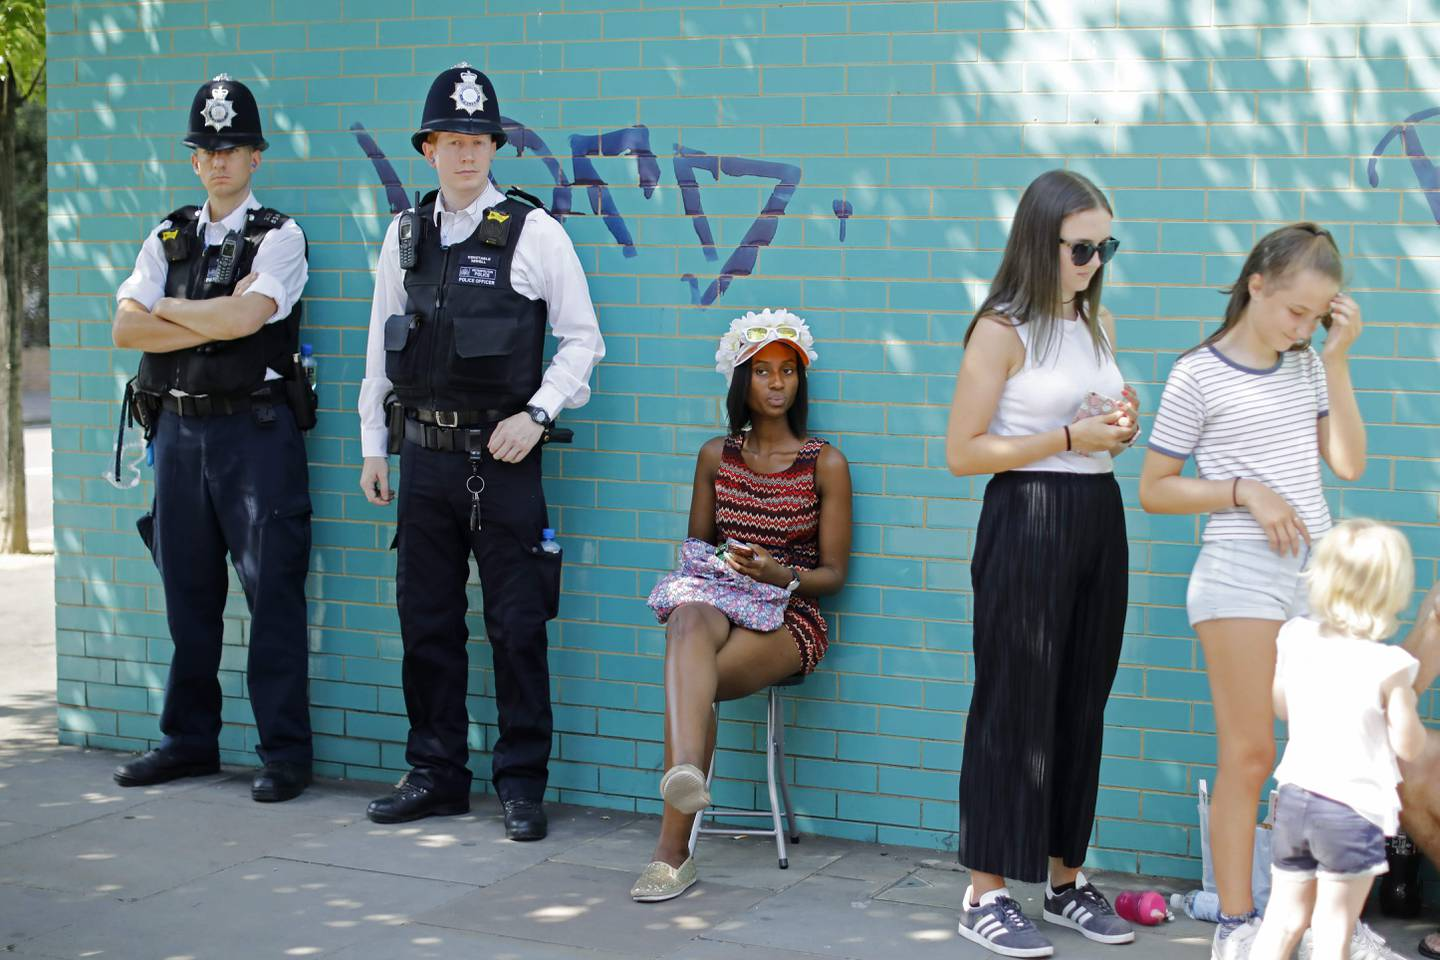 Police officers keep an eye out on the first day of the Notting Hill Carnival in west London on August 27, 2017.  Nearly one million people are expected by the organizers Sunday and Monday in the streets of west London's Notting Hill to celebrate Caribbean culture at a carnival considered the largest street demonstration in Europe. / AFP PHOTO / Tolga AKMEN